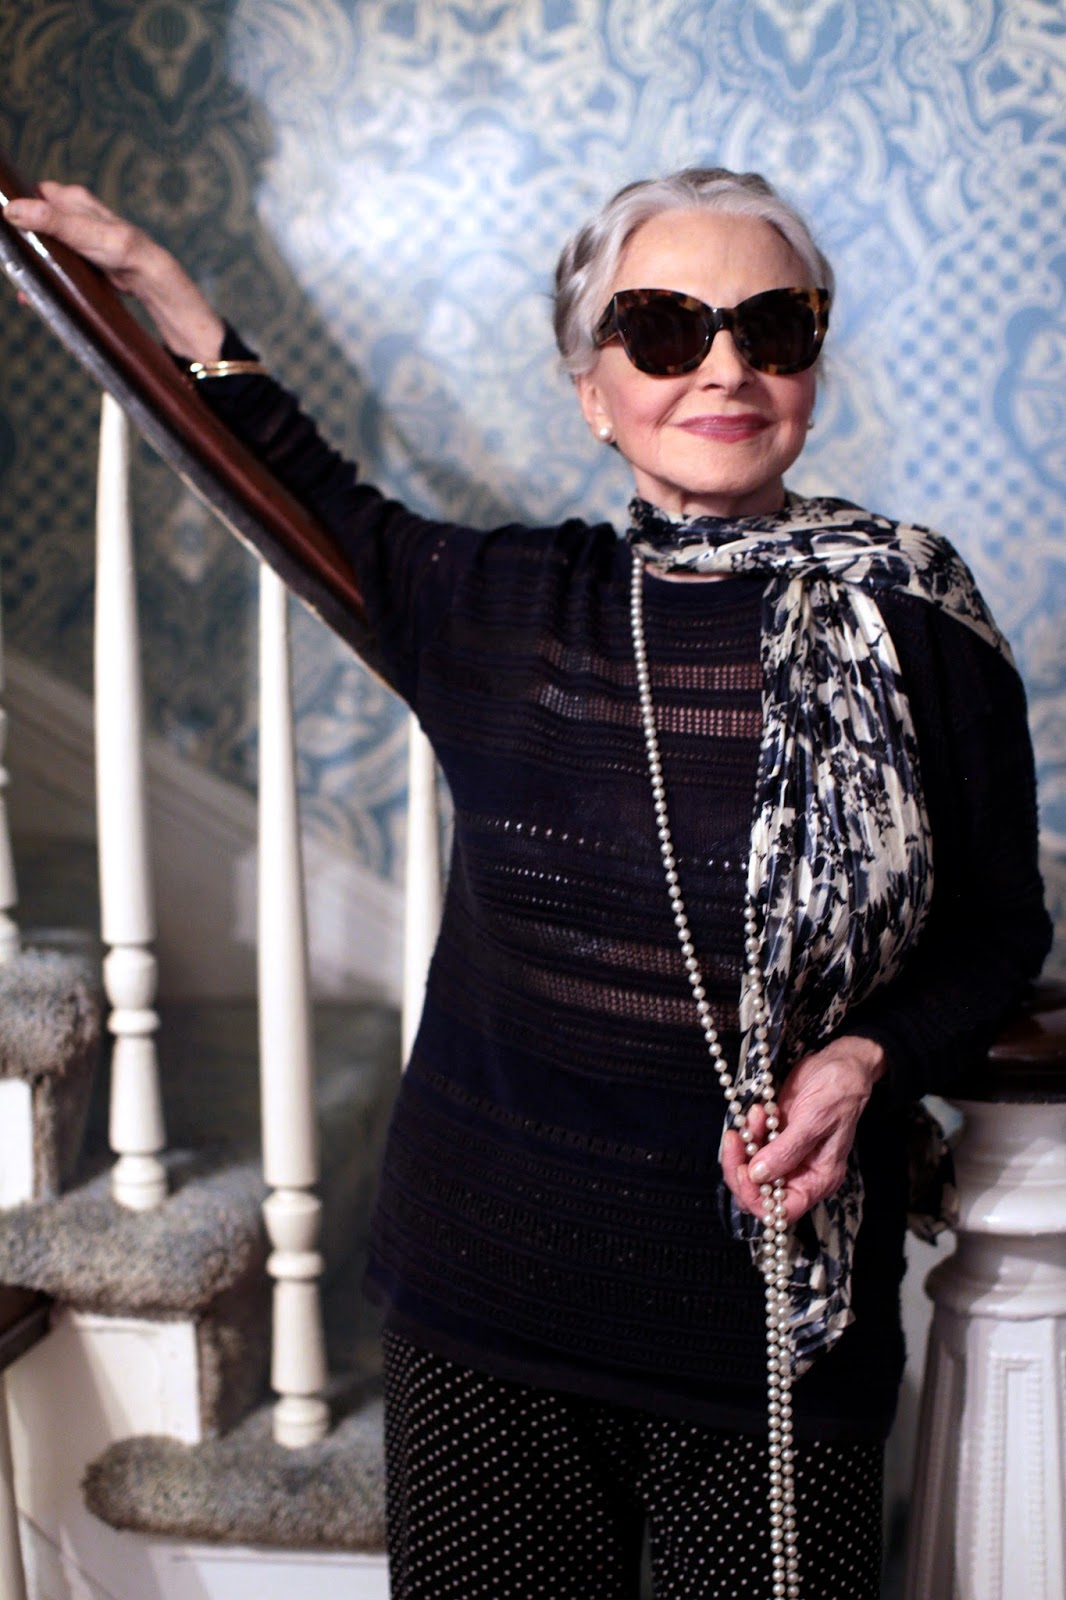 Joyce Carpati The 80 Year Old Cover Star Of The Advanced